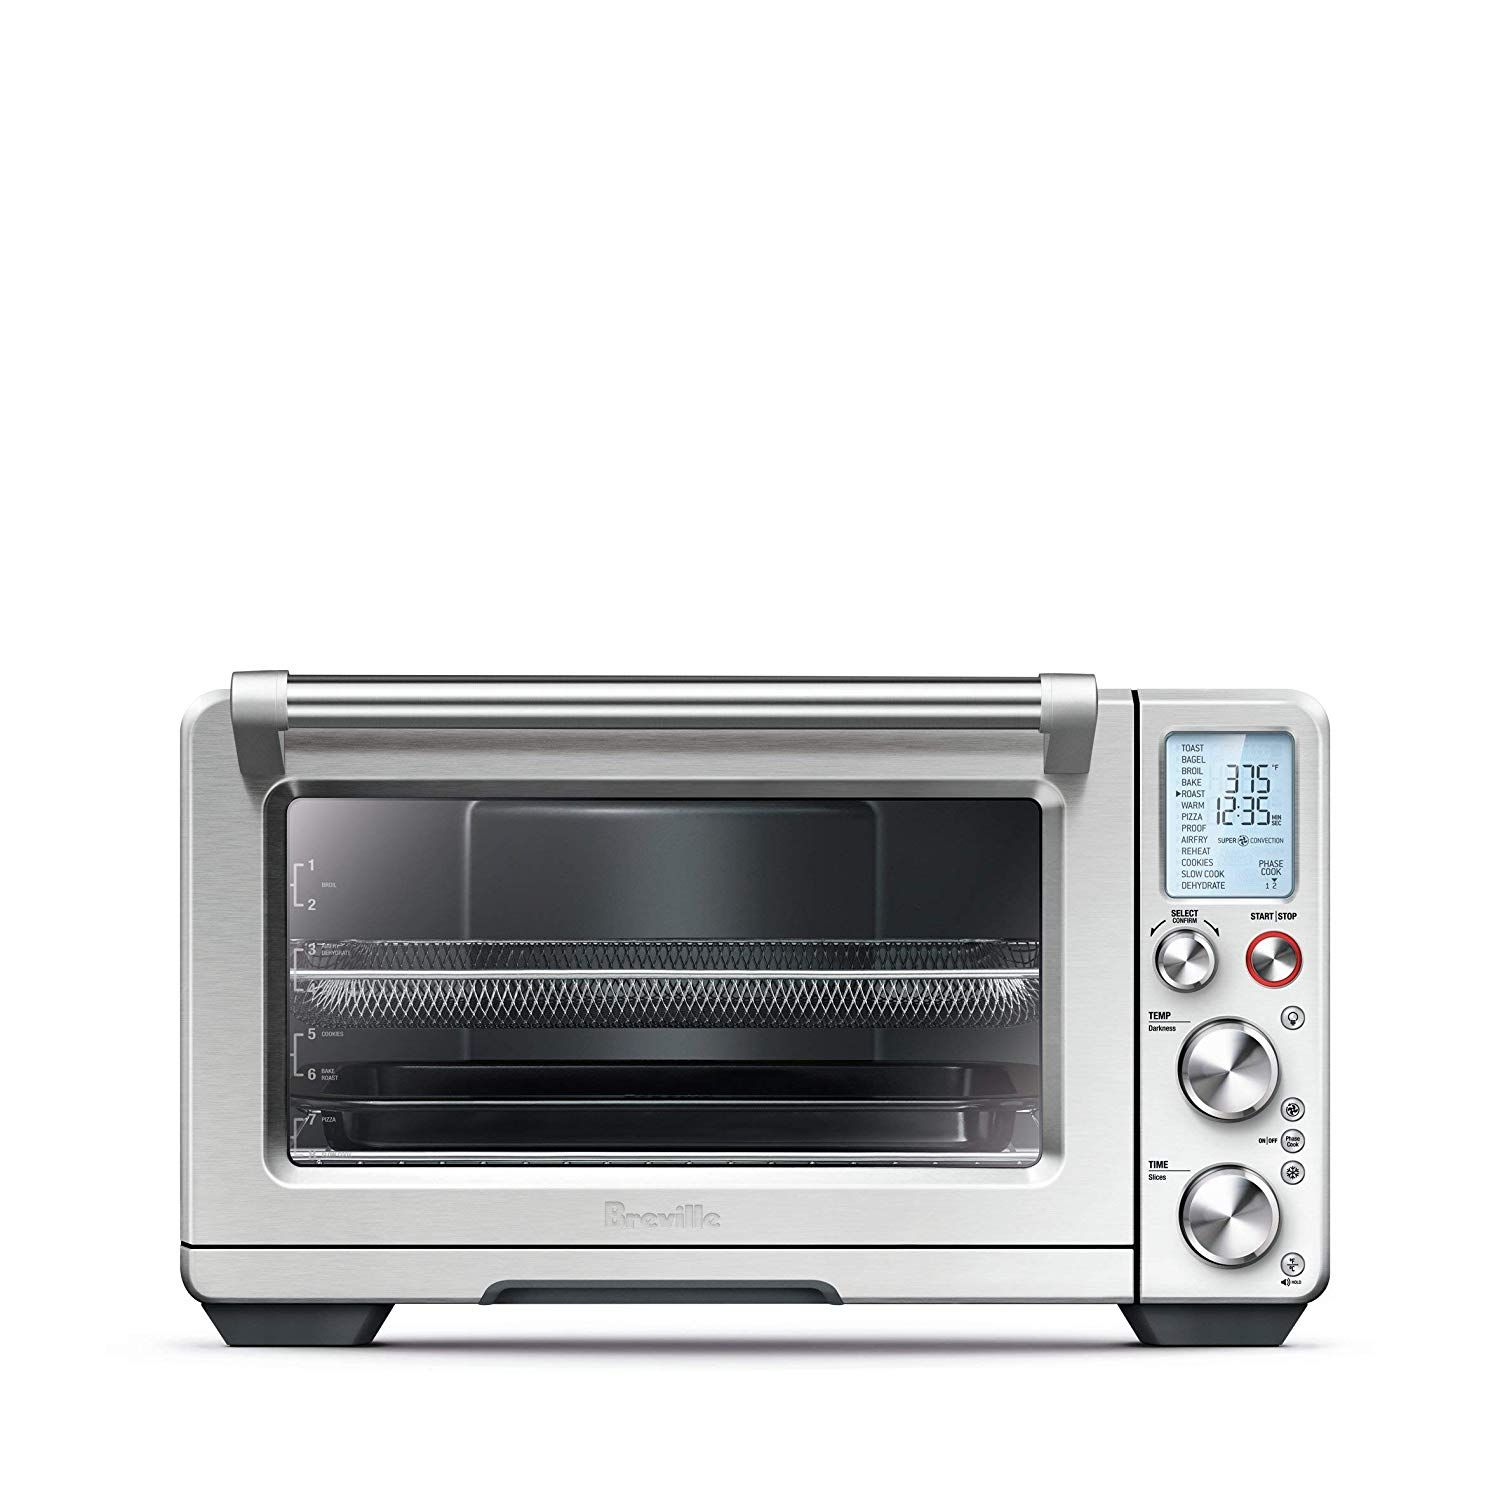 Breville Bov900bss Convection And Air Fry Smart Oven Air You Can Get Additional Details At The Image Link This Is An Affiliate Link Countertop Oven Oven Integrated Oven